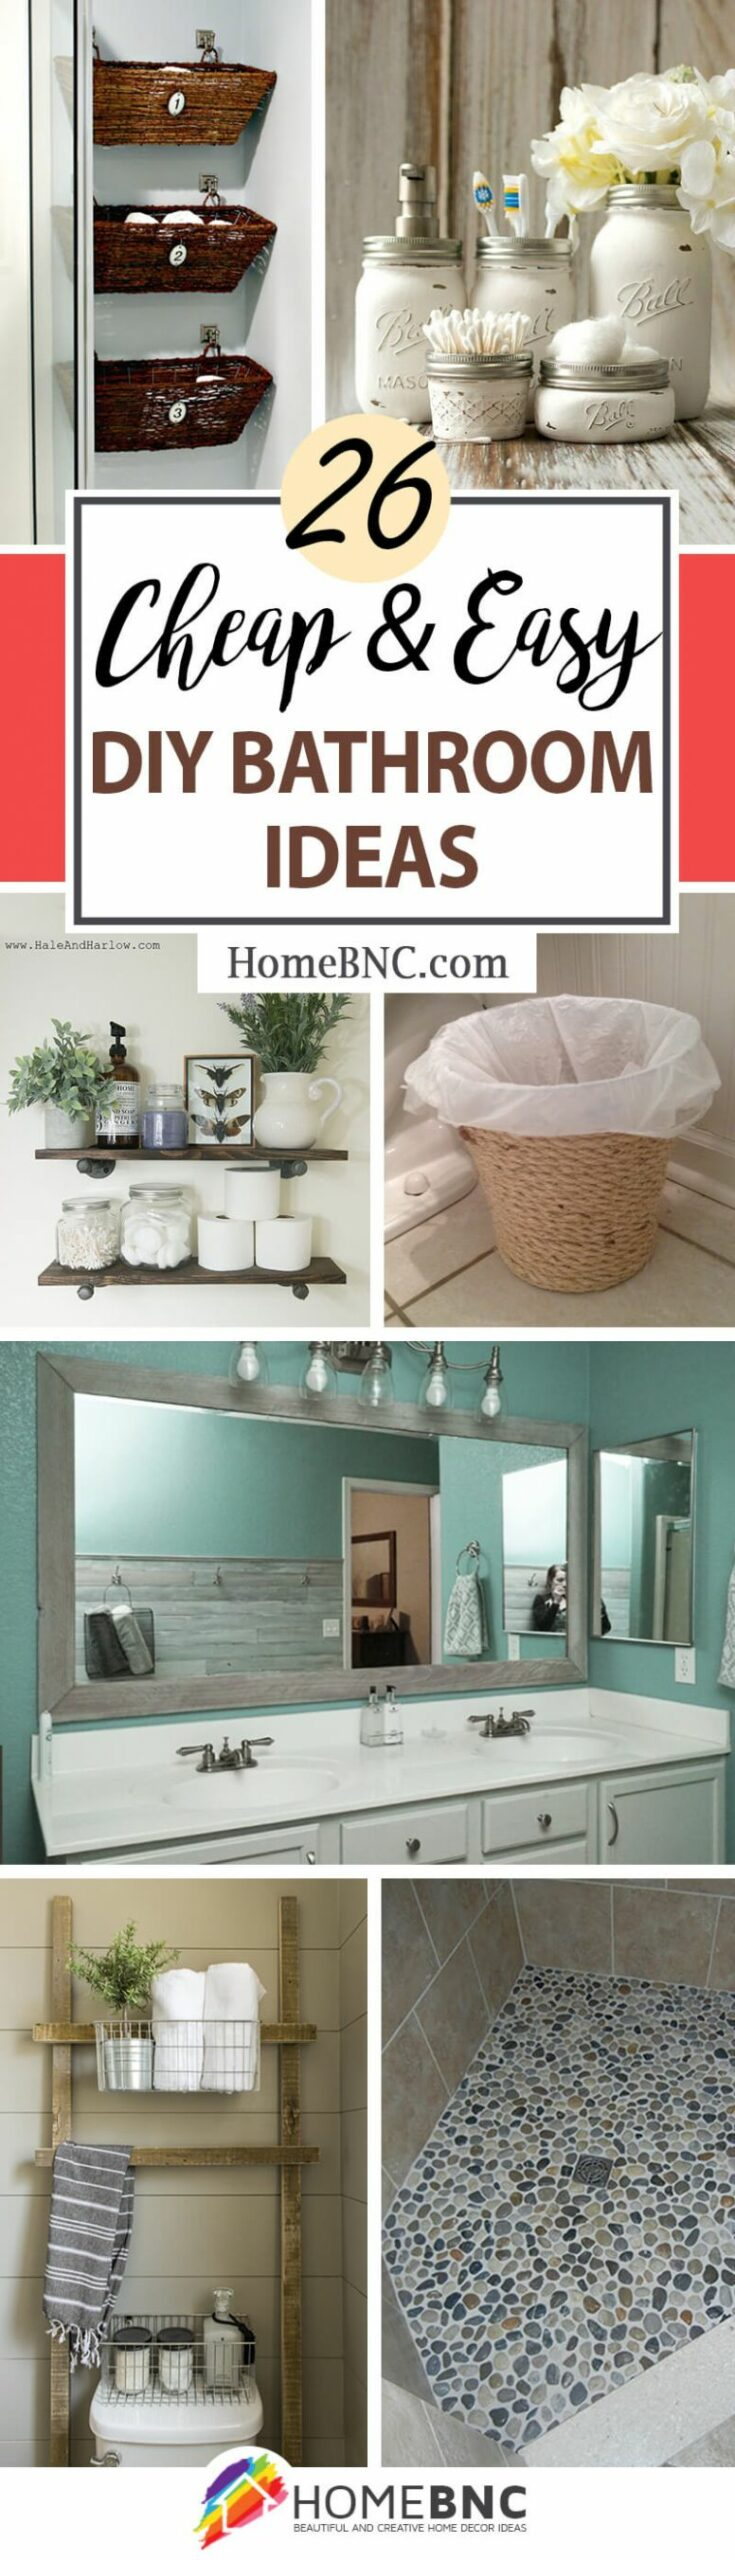 11 Best DIY Bathroom Ideas and Designs for 11